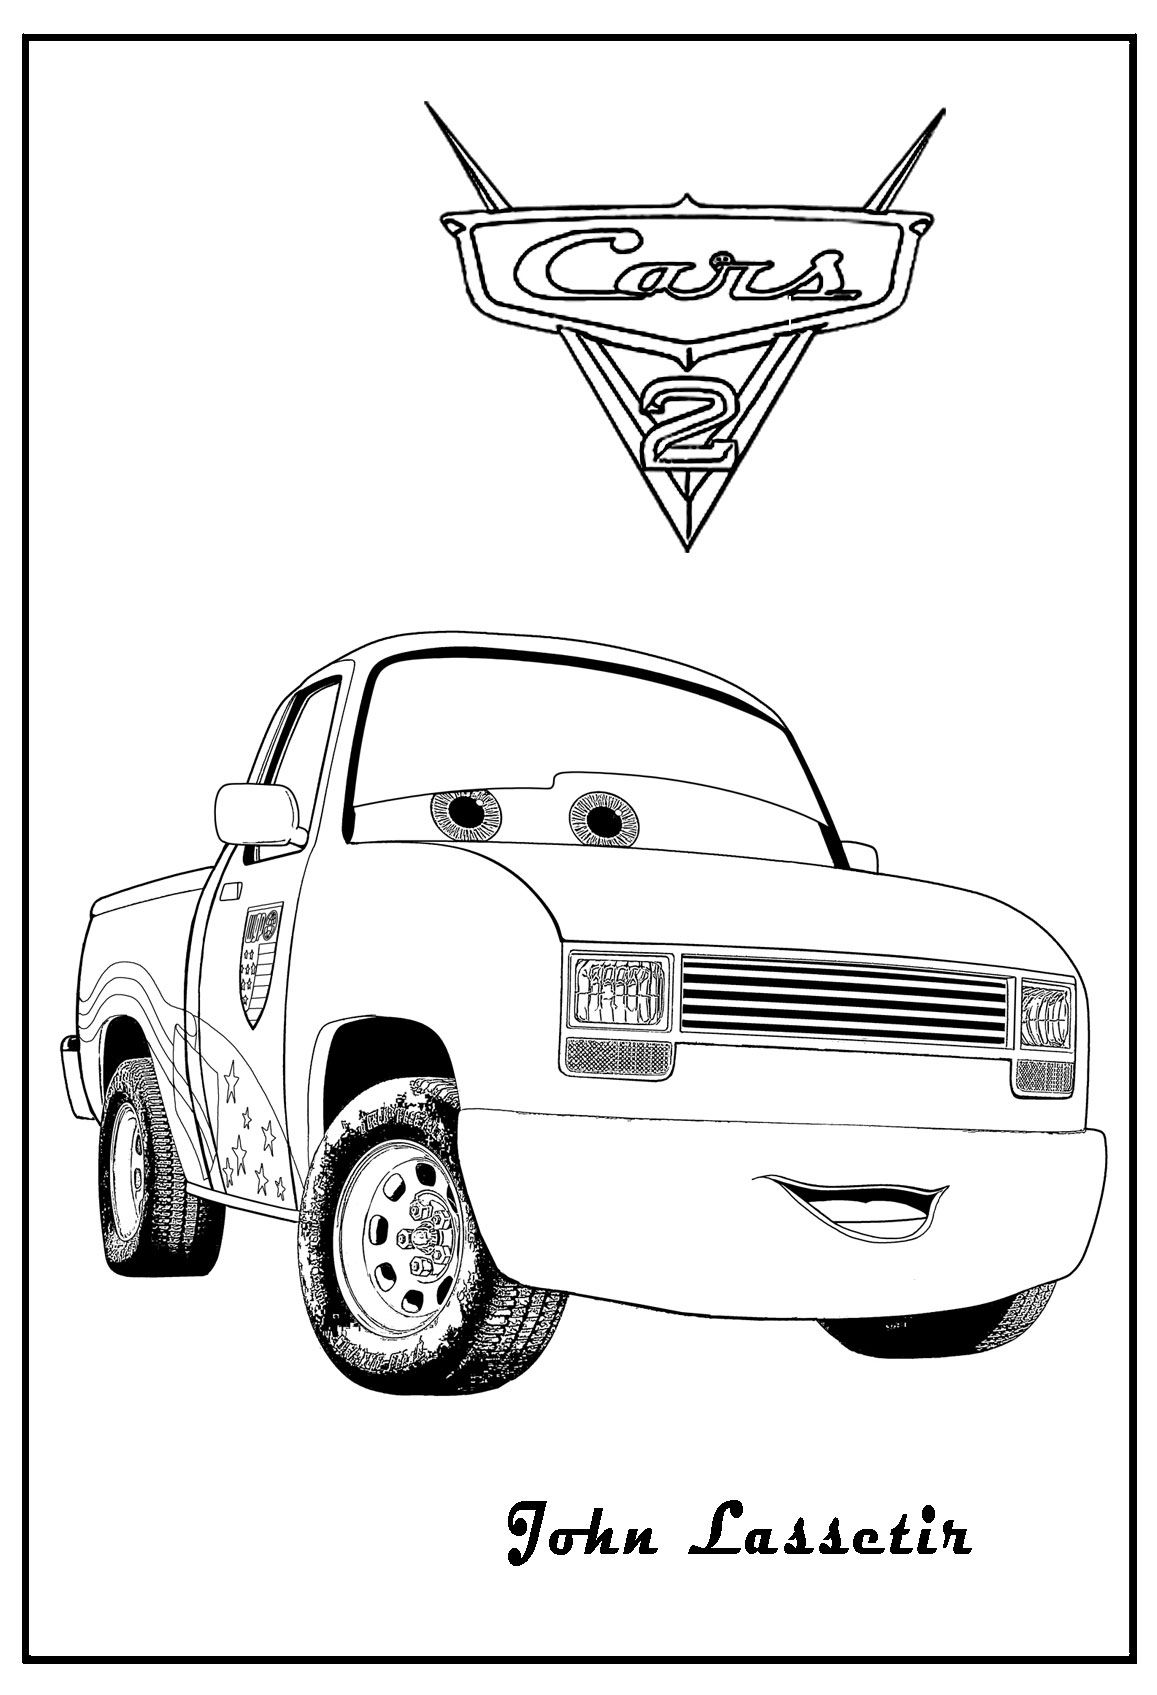 Cars printable coloring pages cars coloring john lassetire cars